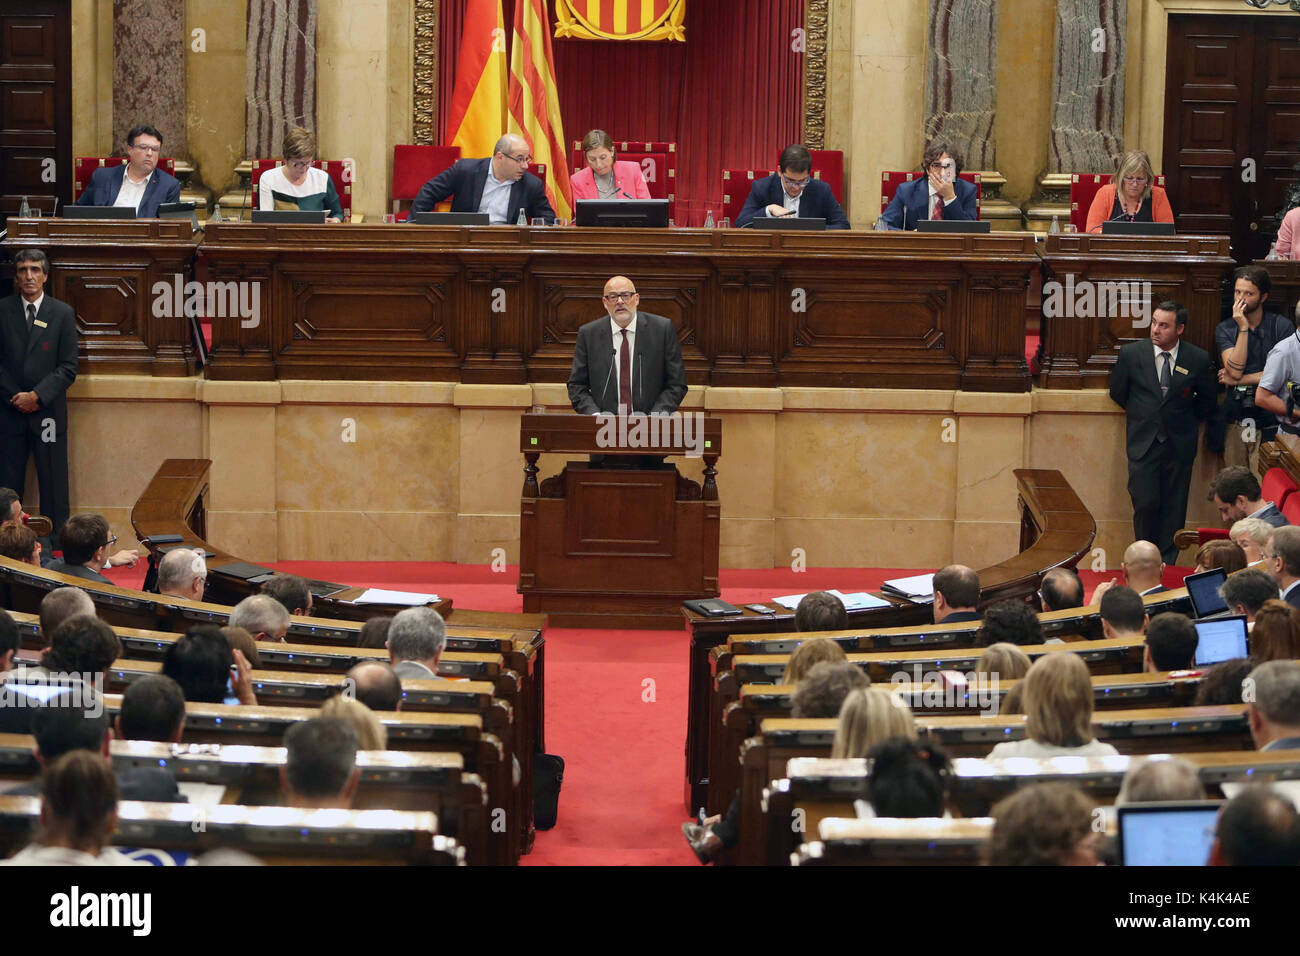 President of the parliamentary group 'Junts pel Si' Lluis Corominas defends the position of his group regarding - Stock Image